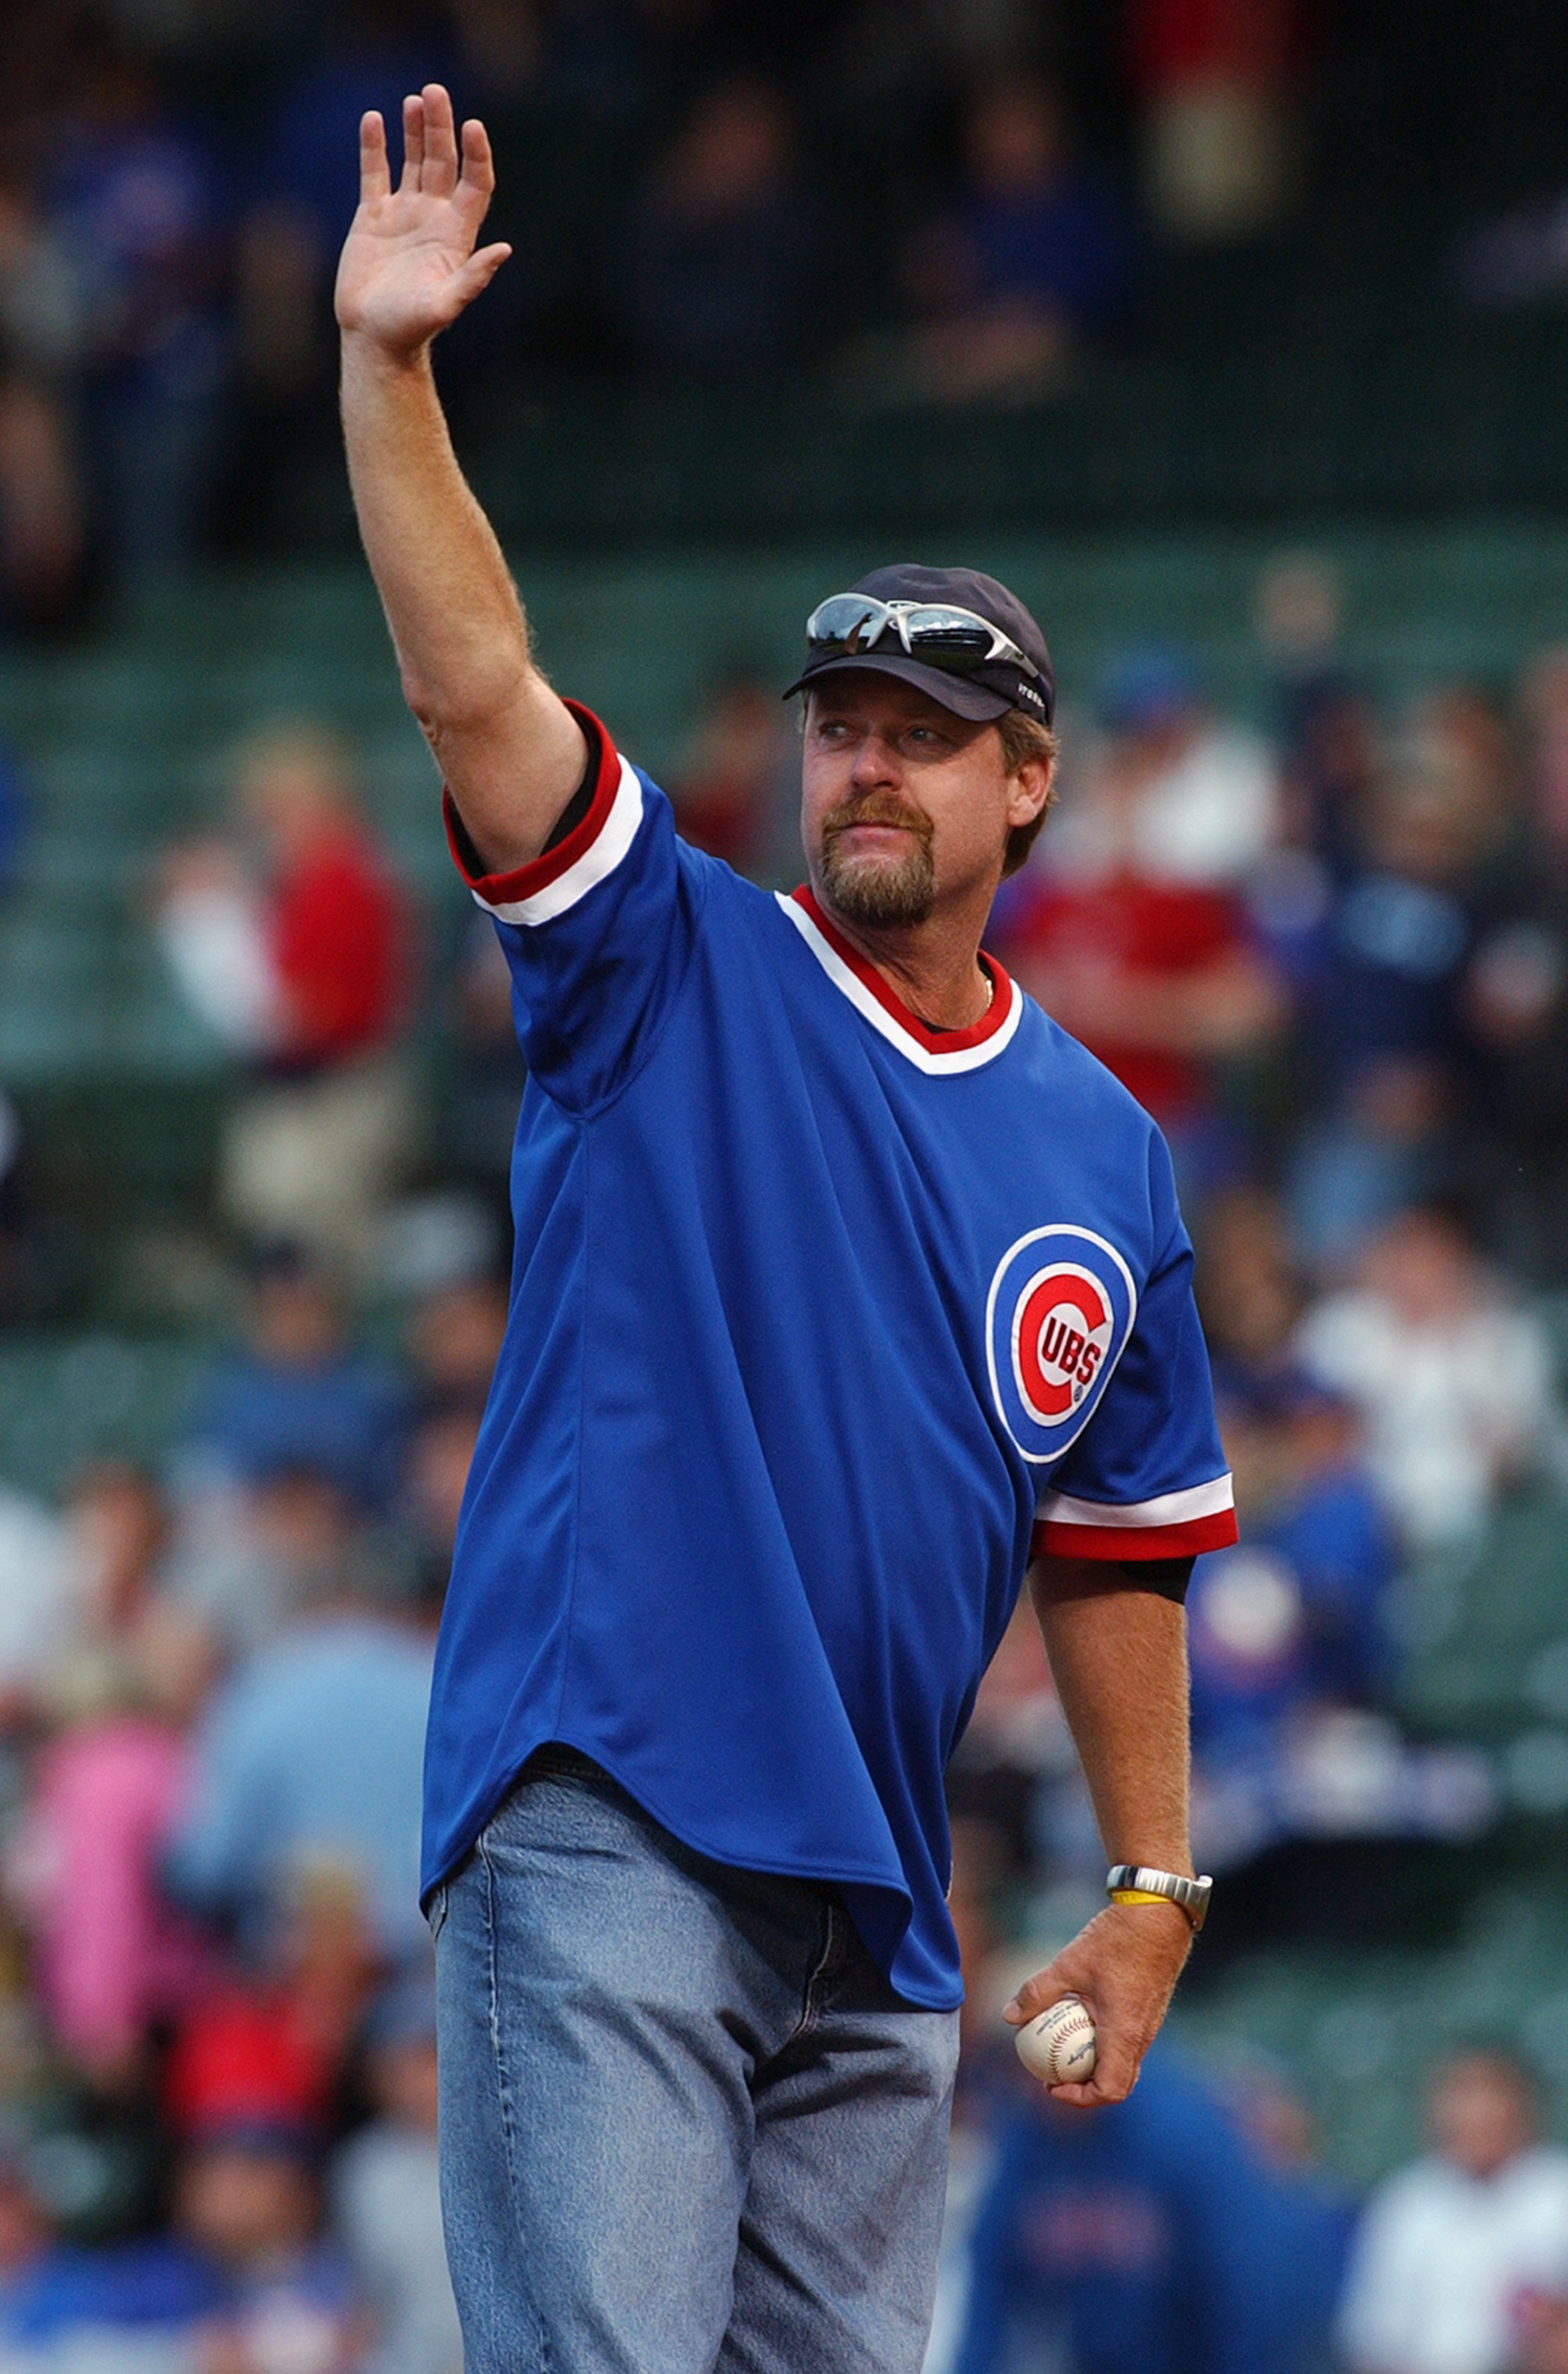 CHICAGO - JUNE 1:  Former Chicago Cubs pitcher Rick Sutcliffe now an ESPN Announcer, throws out the first pitch before the game between the Houston Astros and the Chicago Cubs on June 1, 2004 at Wrigley Field in Chicago, Illinois. The Astros defeated the